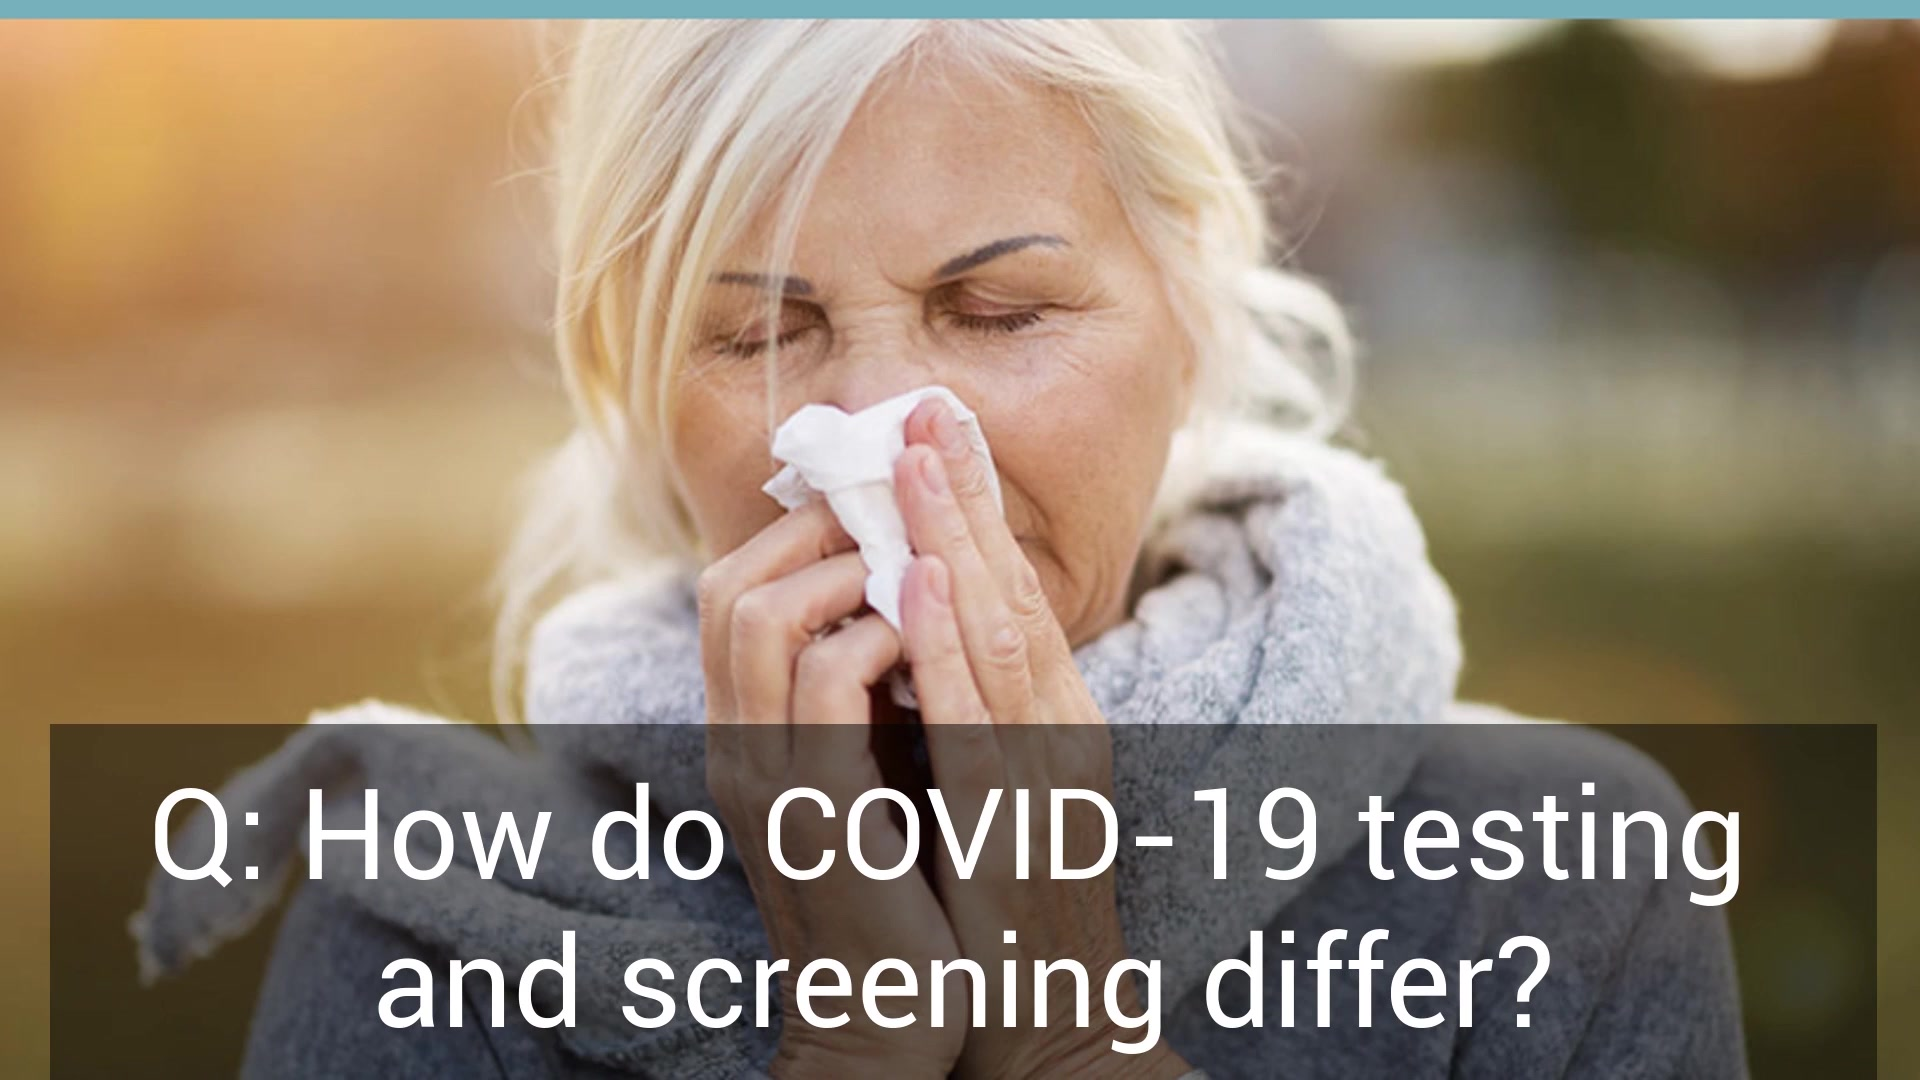 Defense Health Agency recently released Q & A regarding COVID-19 testing, screening, quarantine, and isolation. Photos: Courtesy photos CDC, DHA, National Institute of Health.